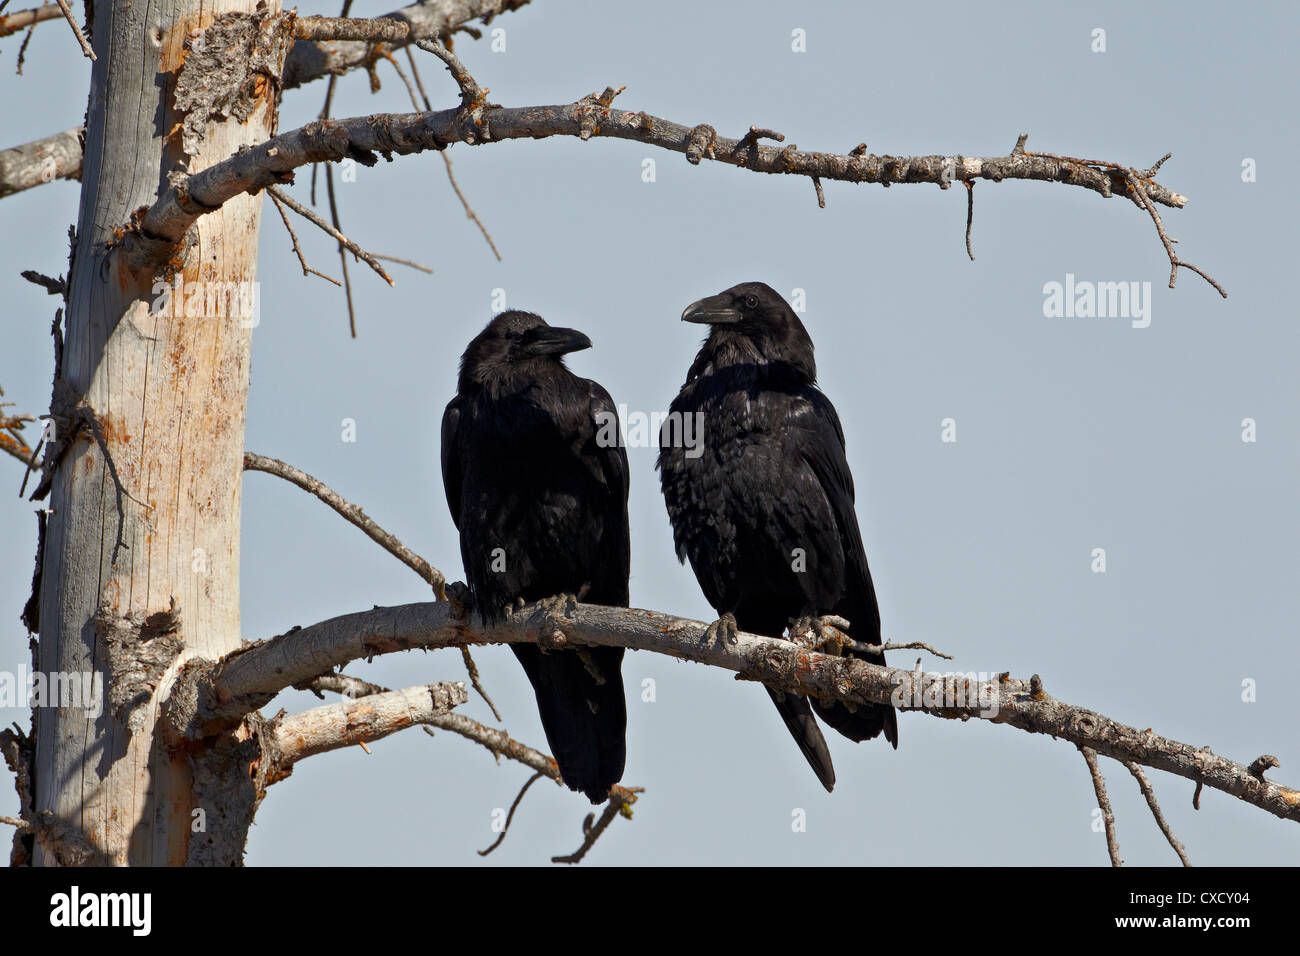 Common raven (Corvus corax) pair, Yellowstone National Park, Wyoming, United States of America, North America - Stock Image